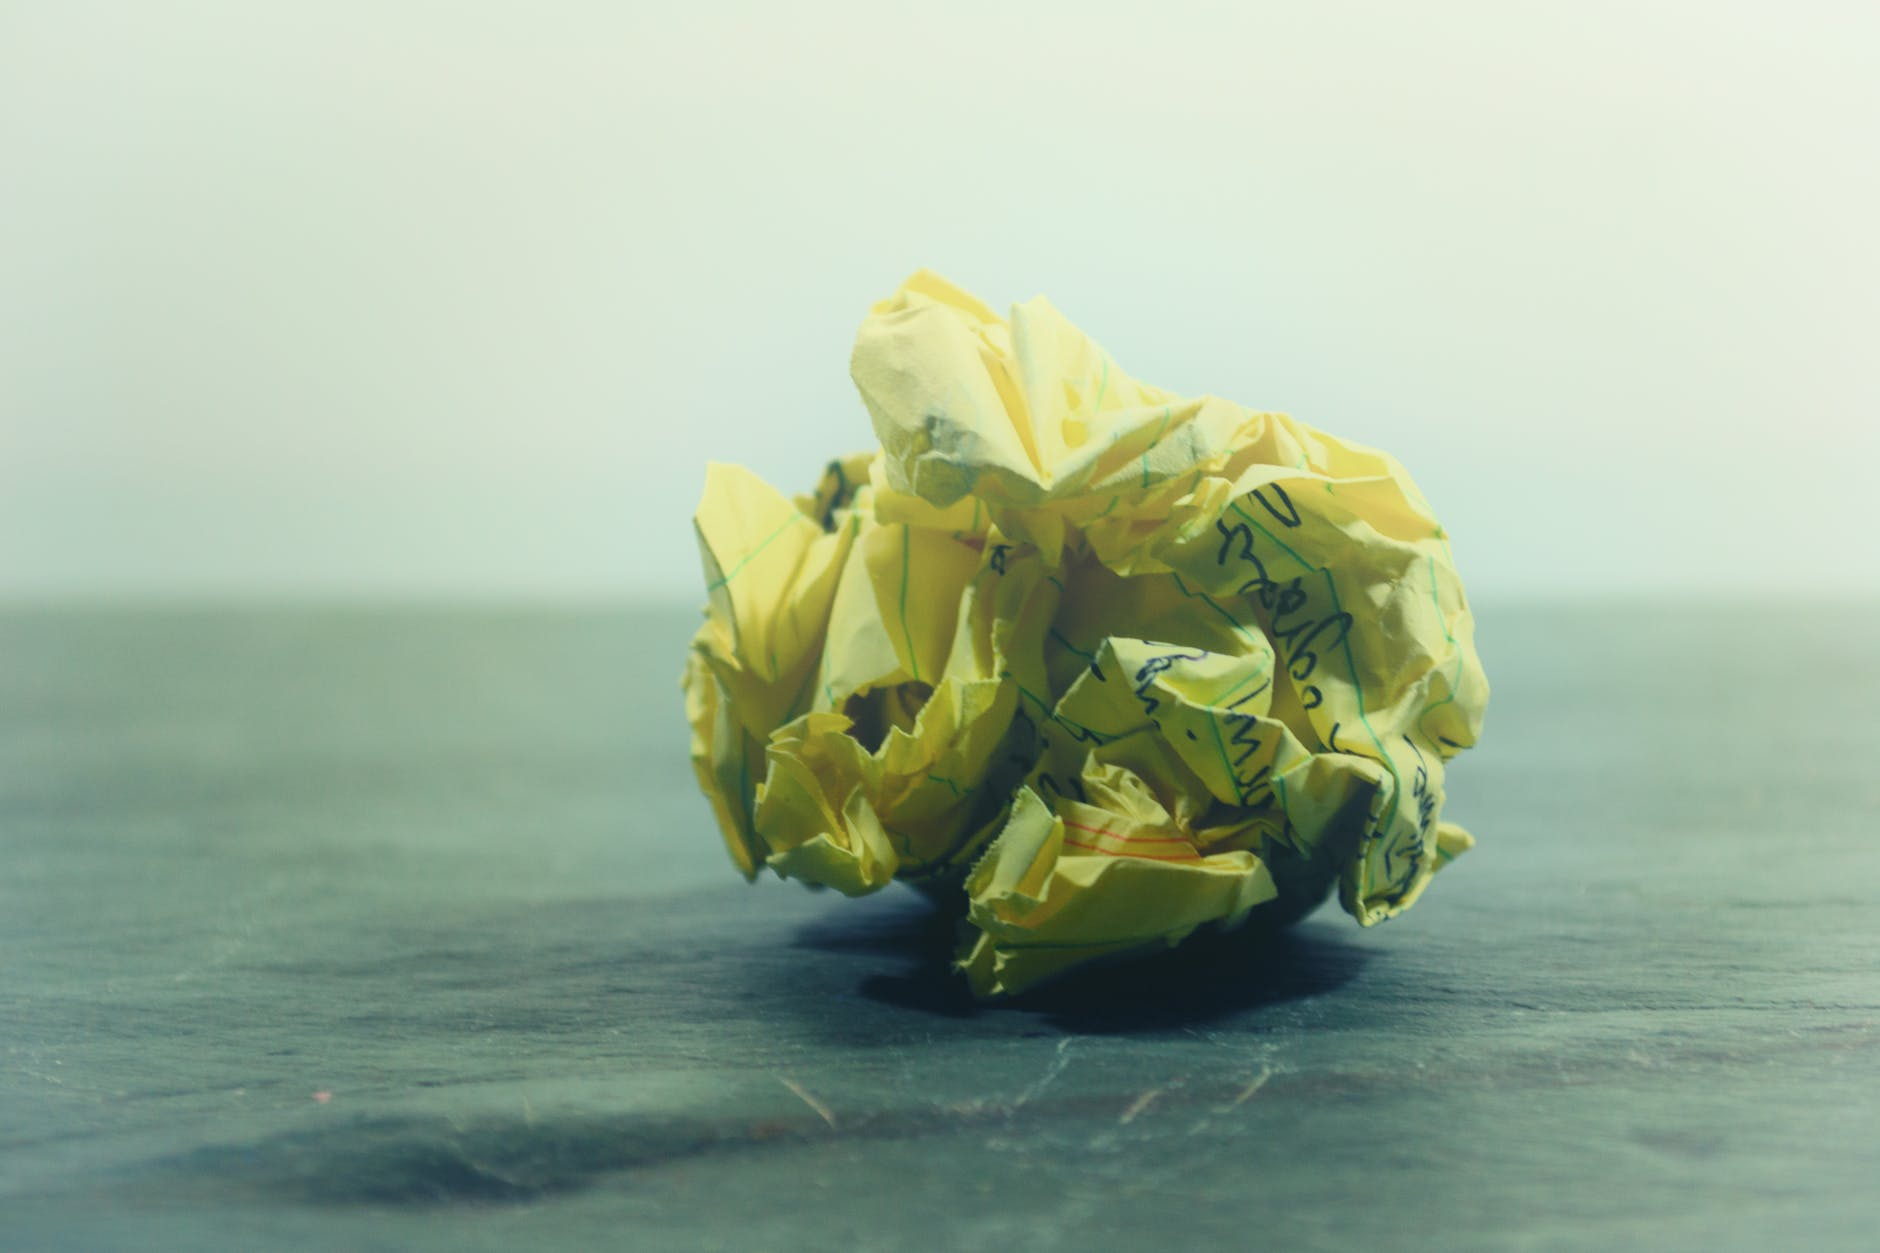 crumpled paper on gray surface